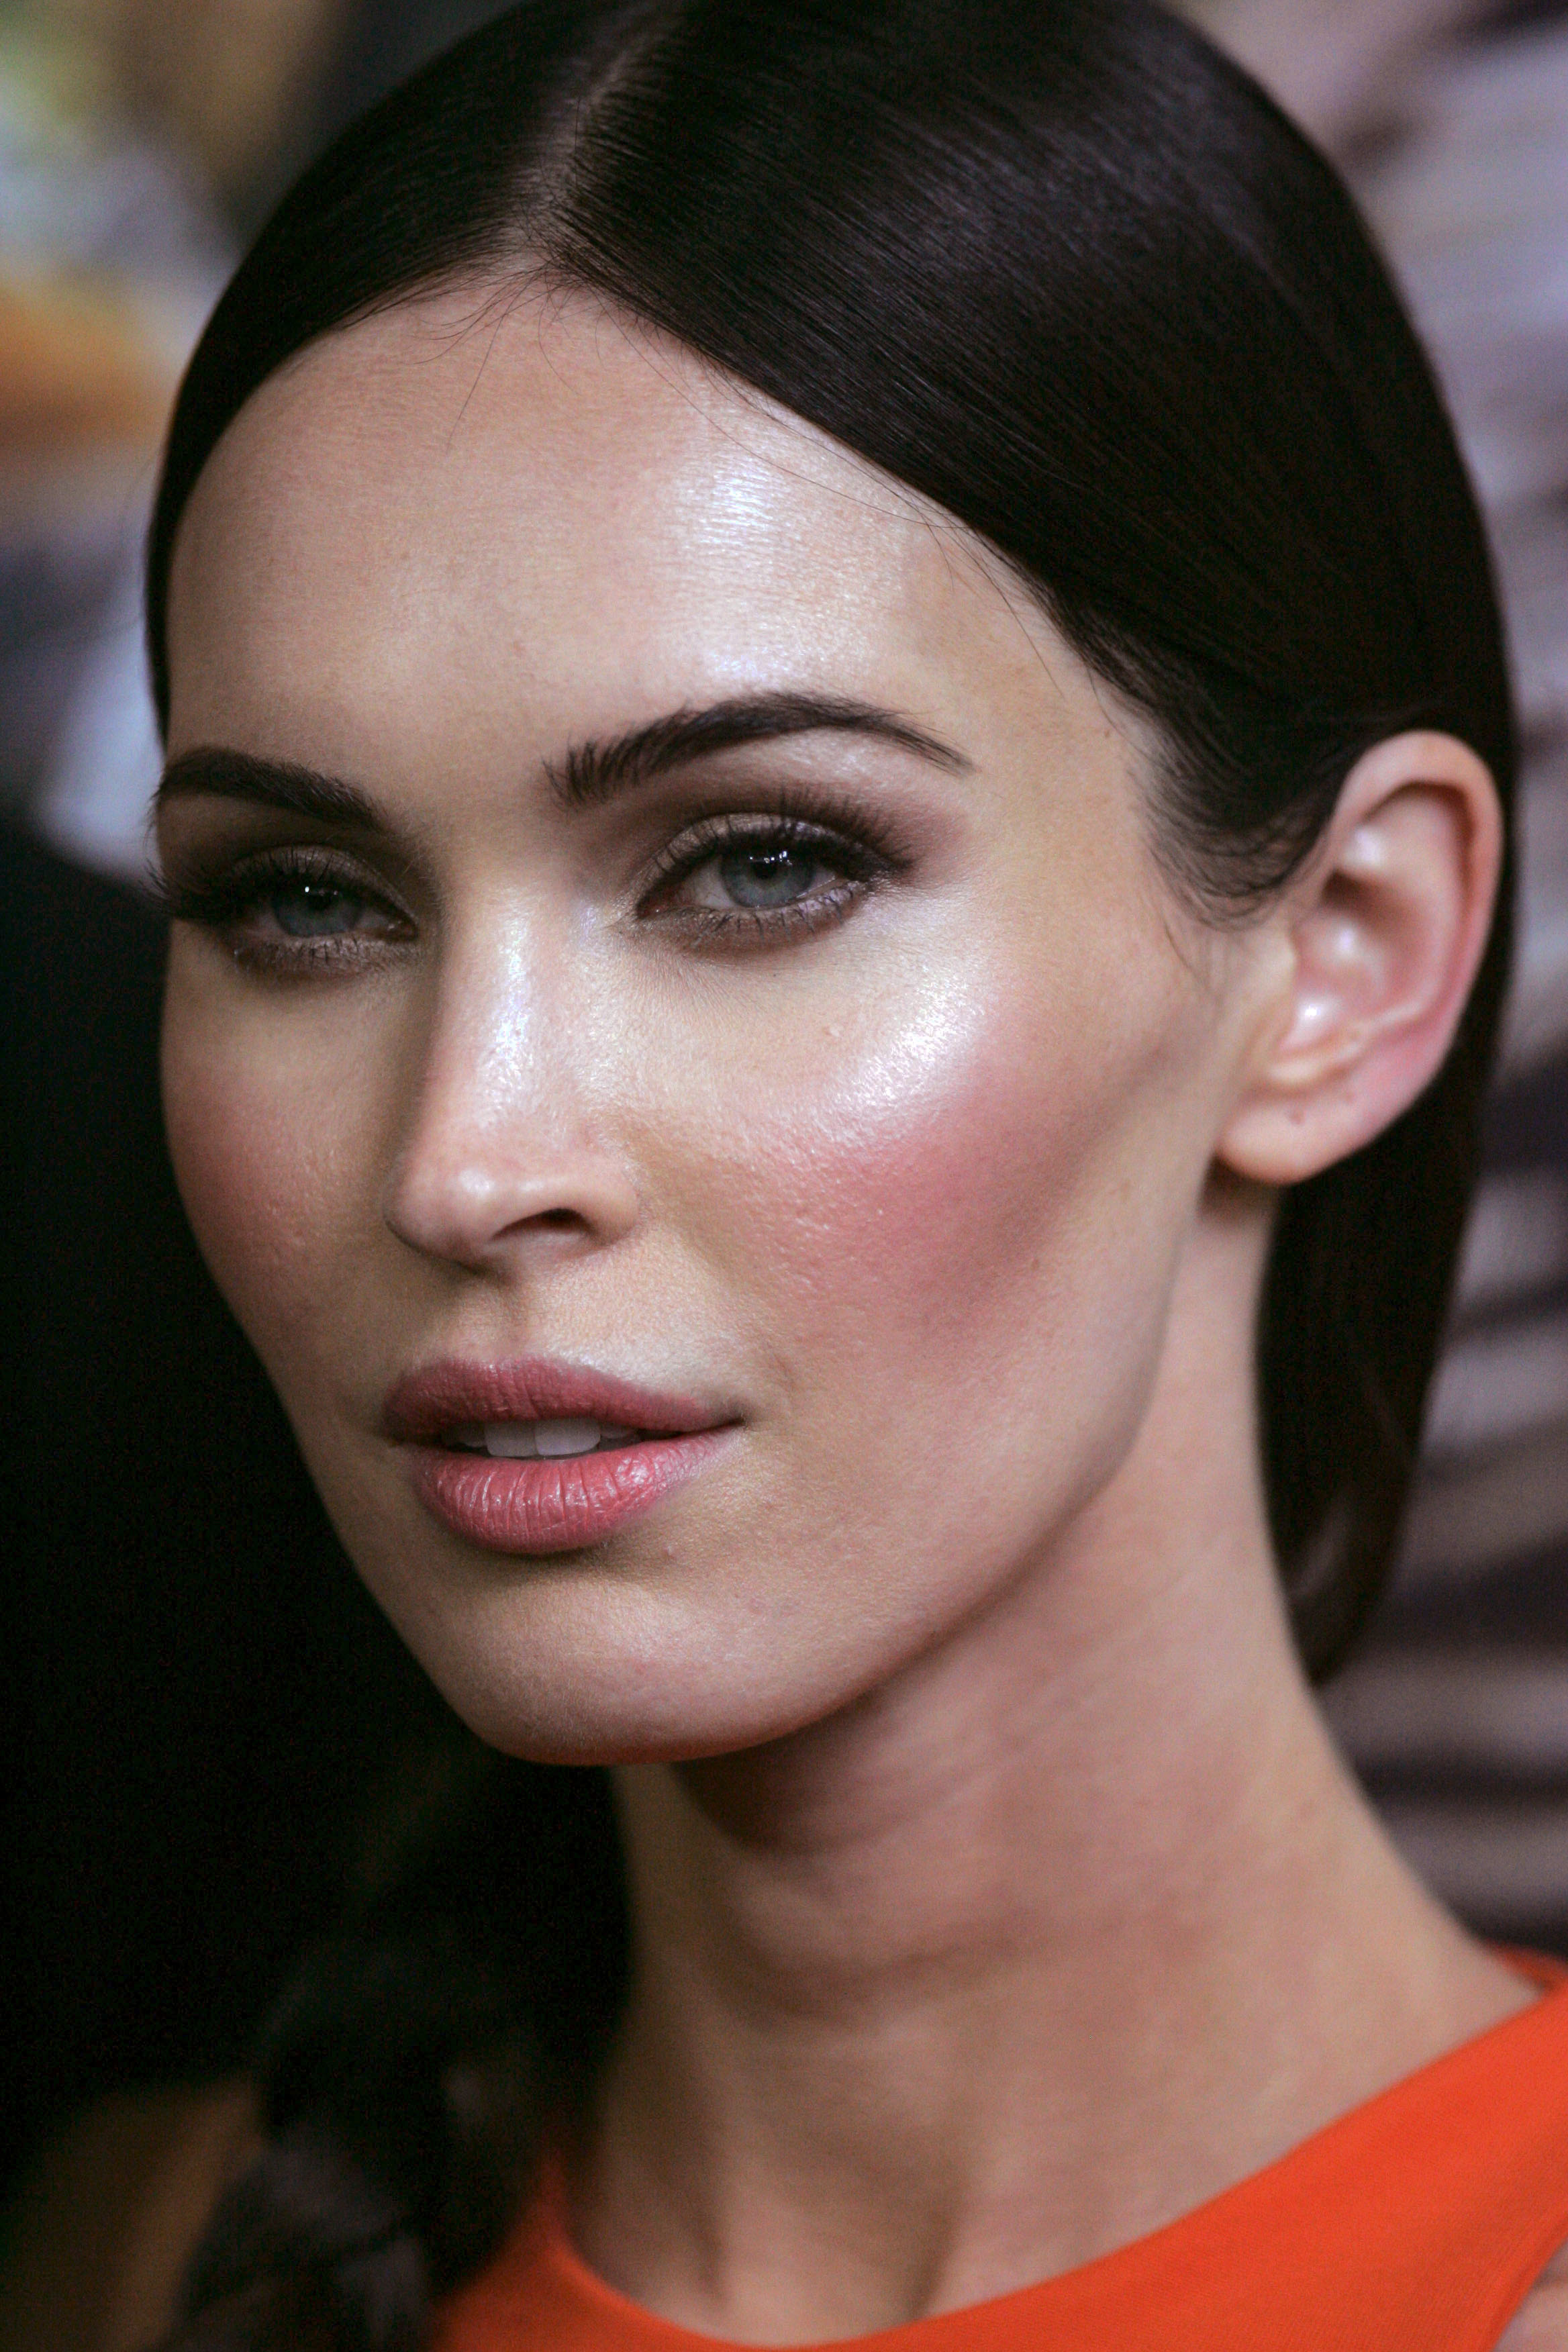 Description Megan Fox 2014.jpg Megan Fox